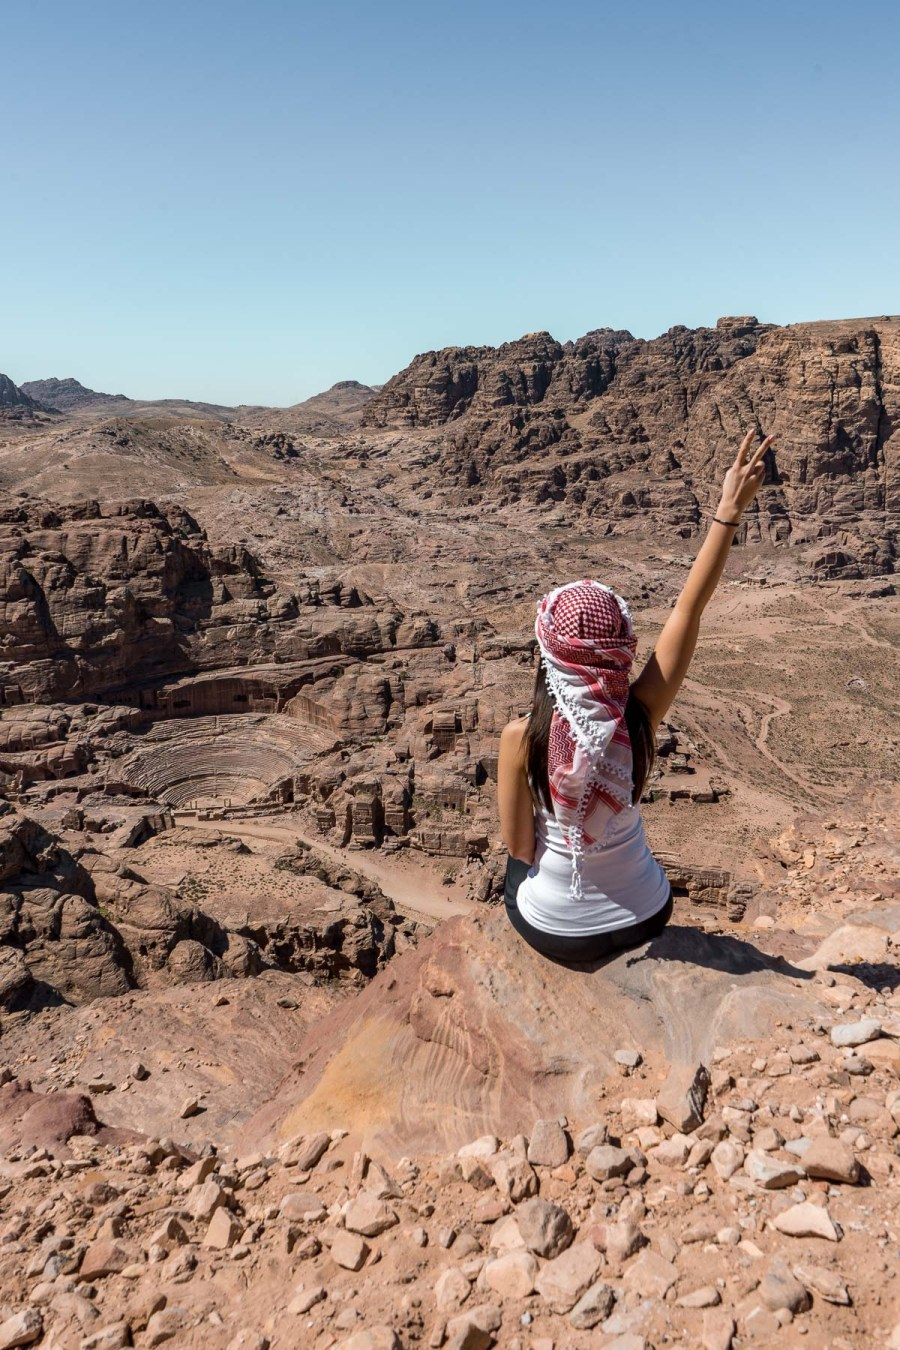 Girl in a white top and a white-red keffiyeh looking at the Nabatean ruins in Petra, Jordan